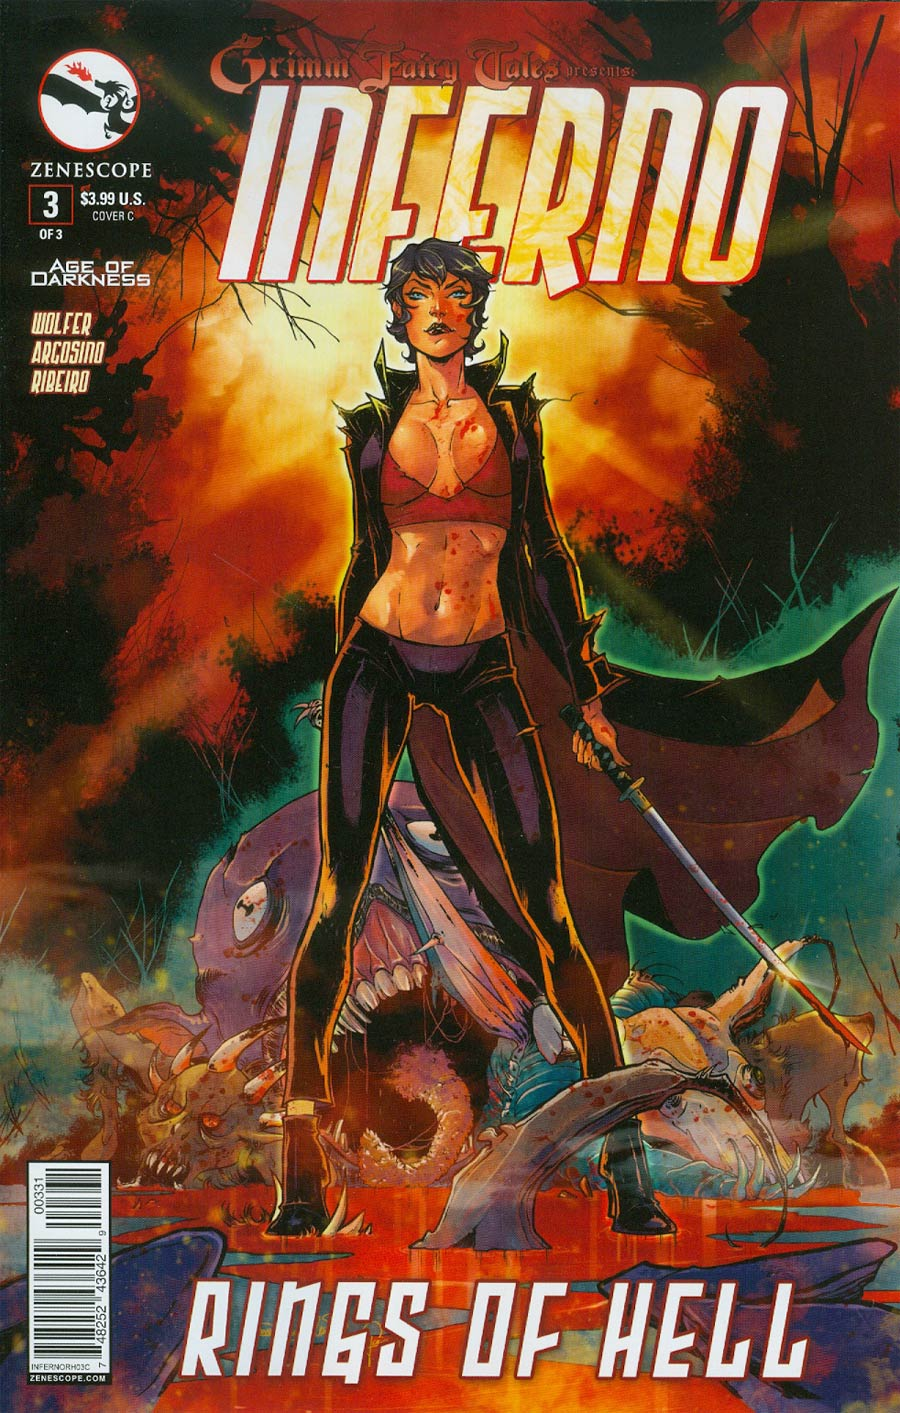 Grimm Fairy Tales Presents Inferno Rings Of Hell #3 Cover C Tina Valentino (Age Of Darkness Tie-In)